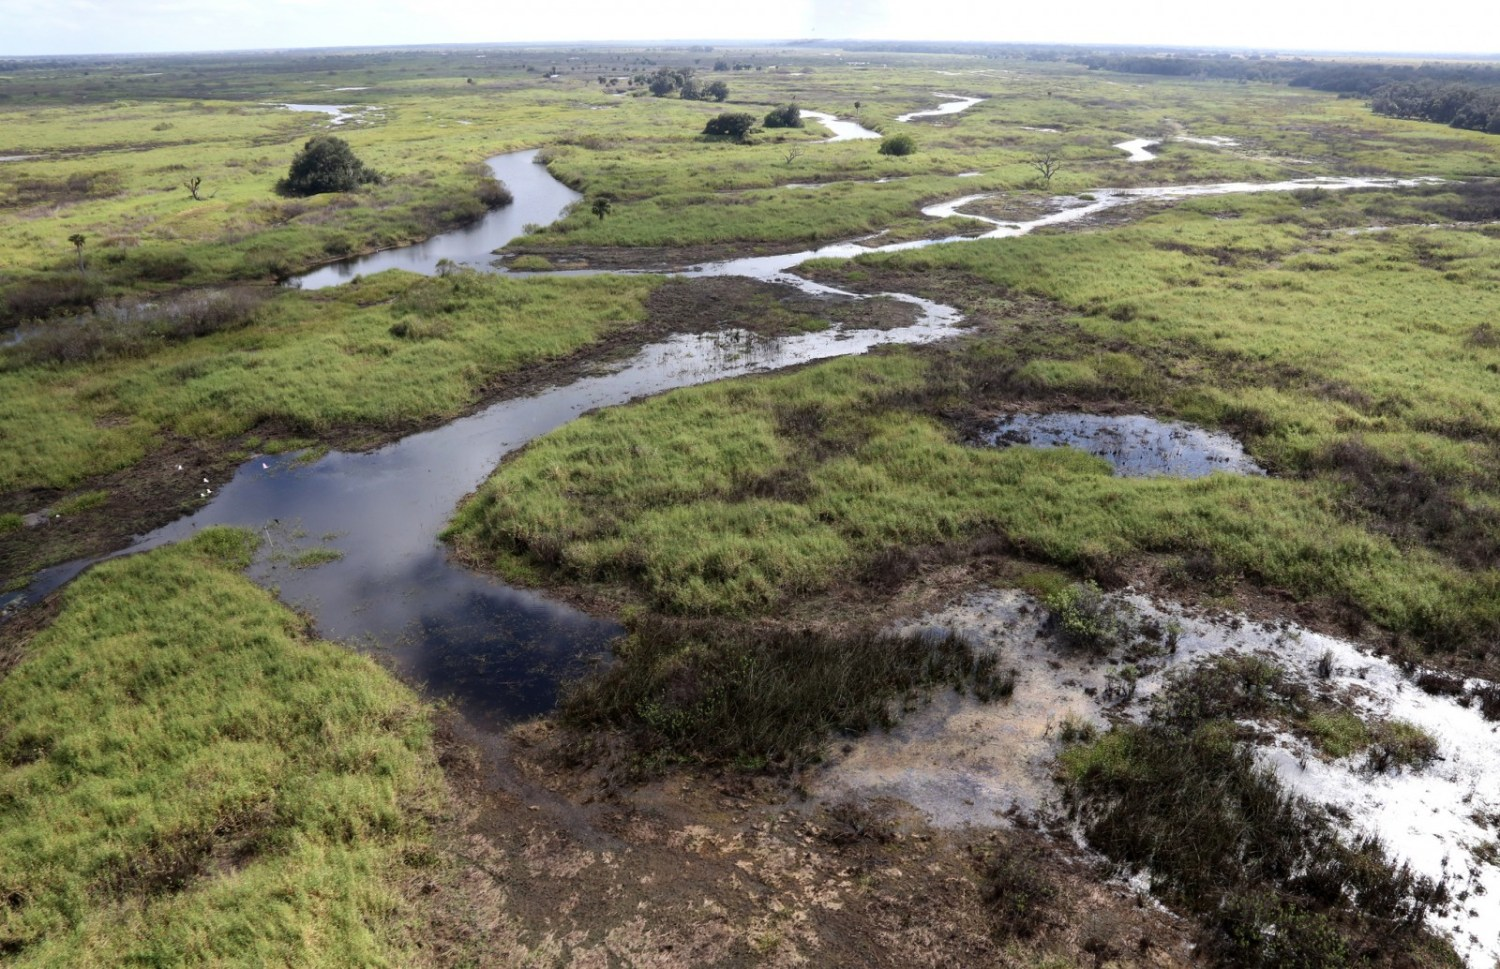 Restoration projects in the Kissimmee River Basin north of Lake Okeechobee are part of larger efforts to reduce nutrient pollution and send clean water south to the Everglades. Photo courtesy Brent Anderson / South Florida Water Management District via Flickr Creative Commons